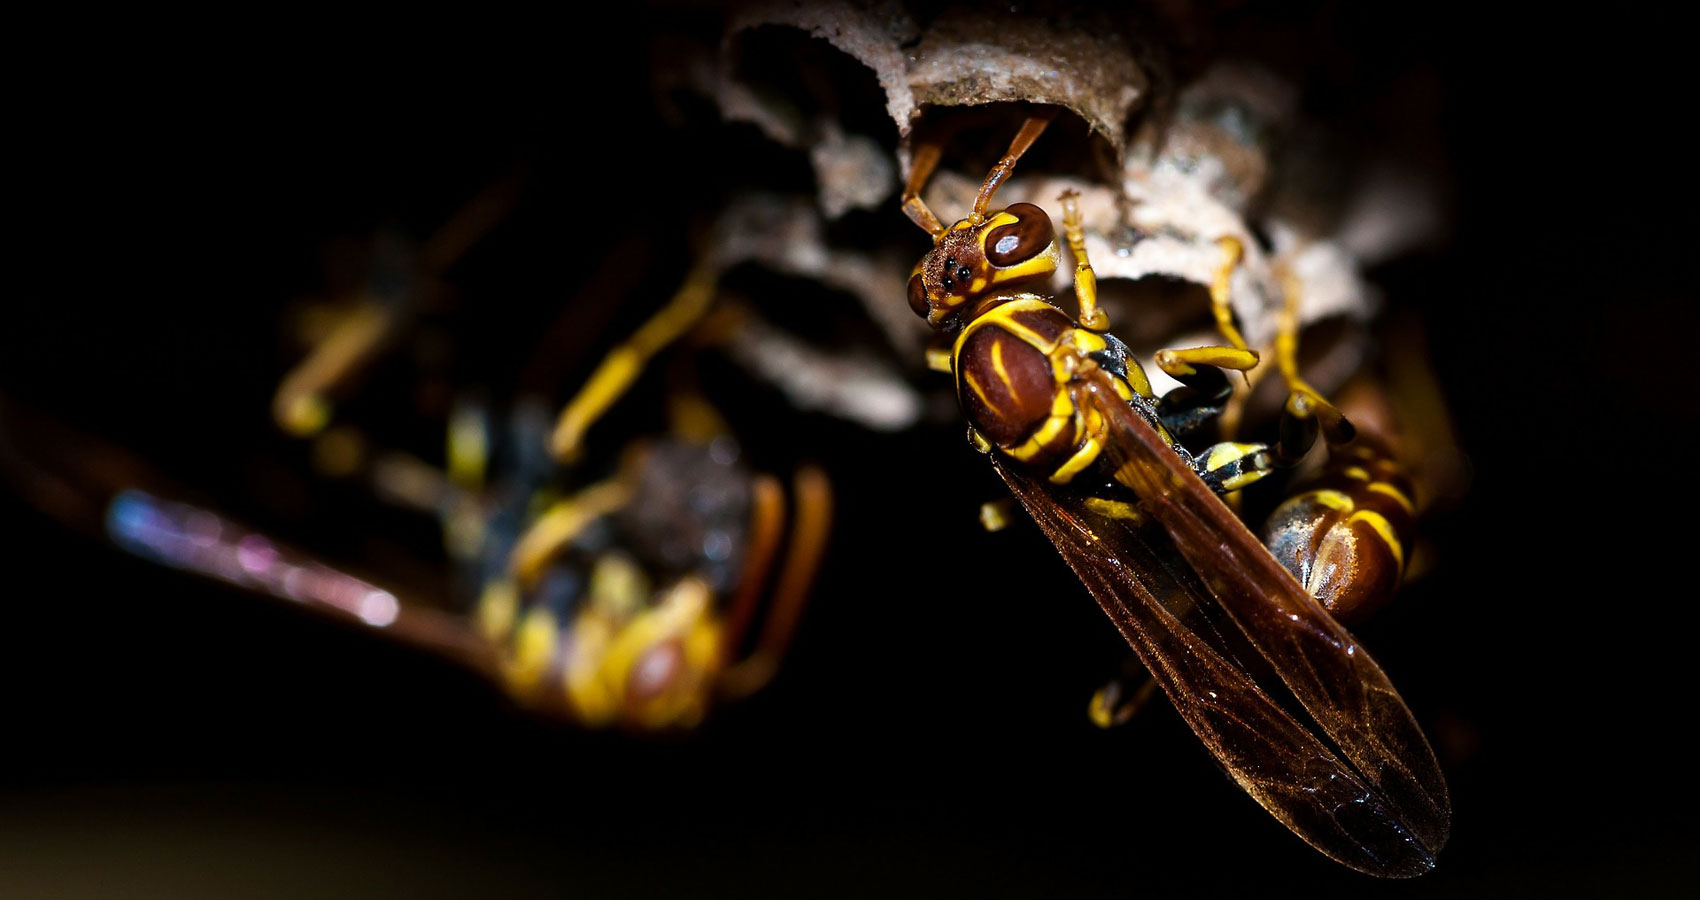 Wasp's Nest written by Polly Oliver at Spillwords.com